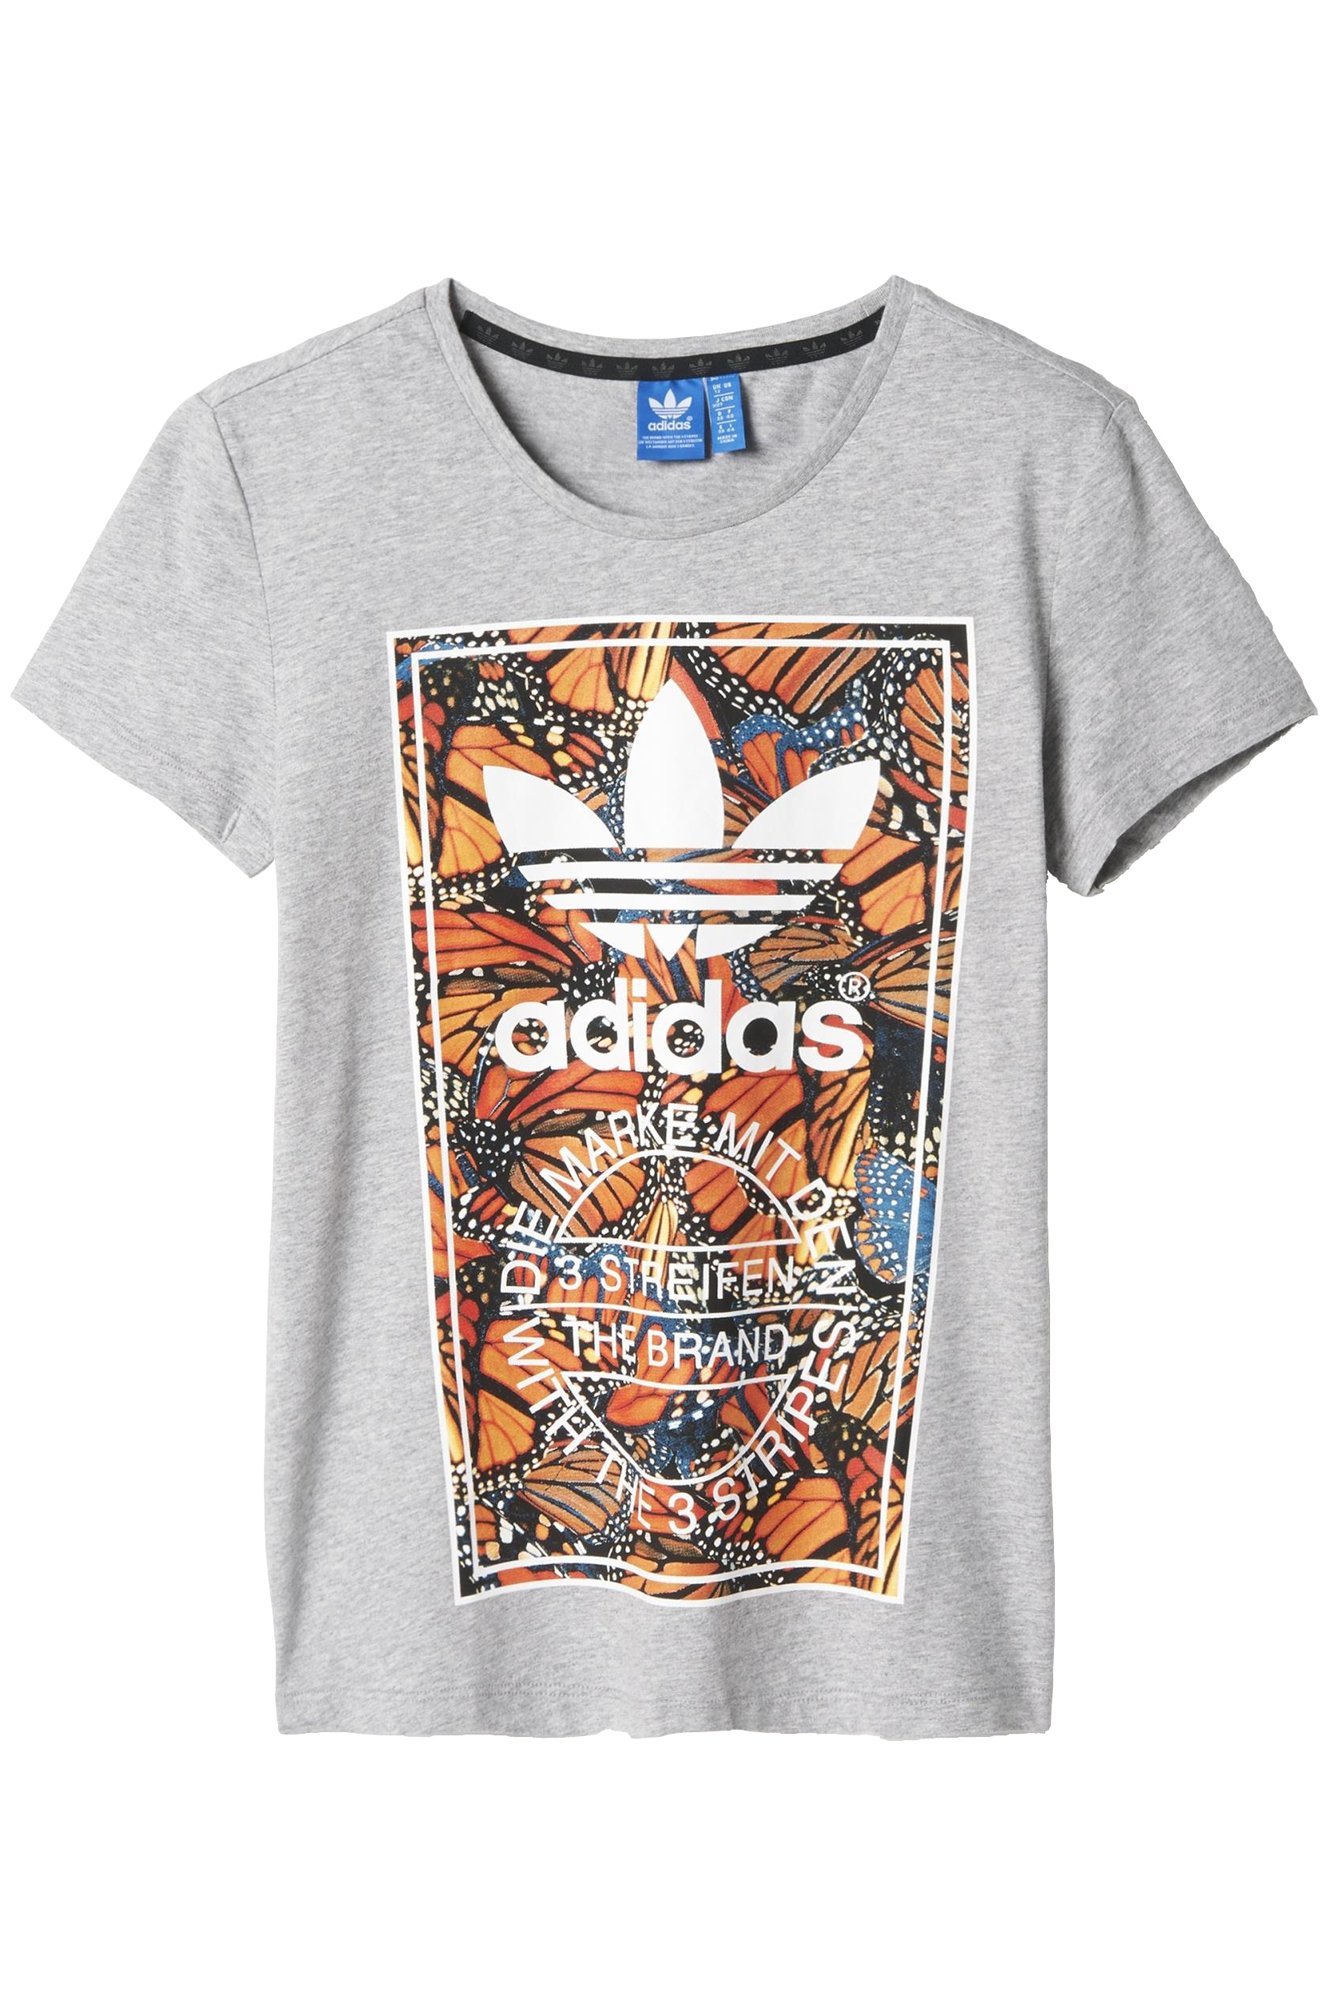 Printgrismulticolor Original Butterfly Adidas Camiseta Mujer F1TKJcl